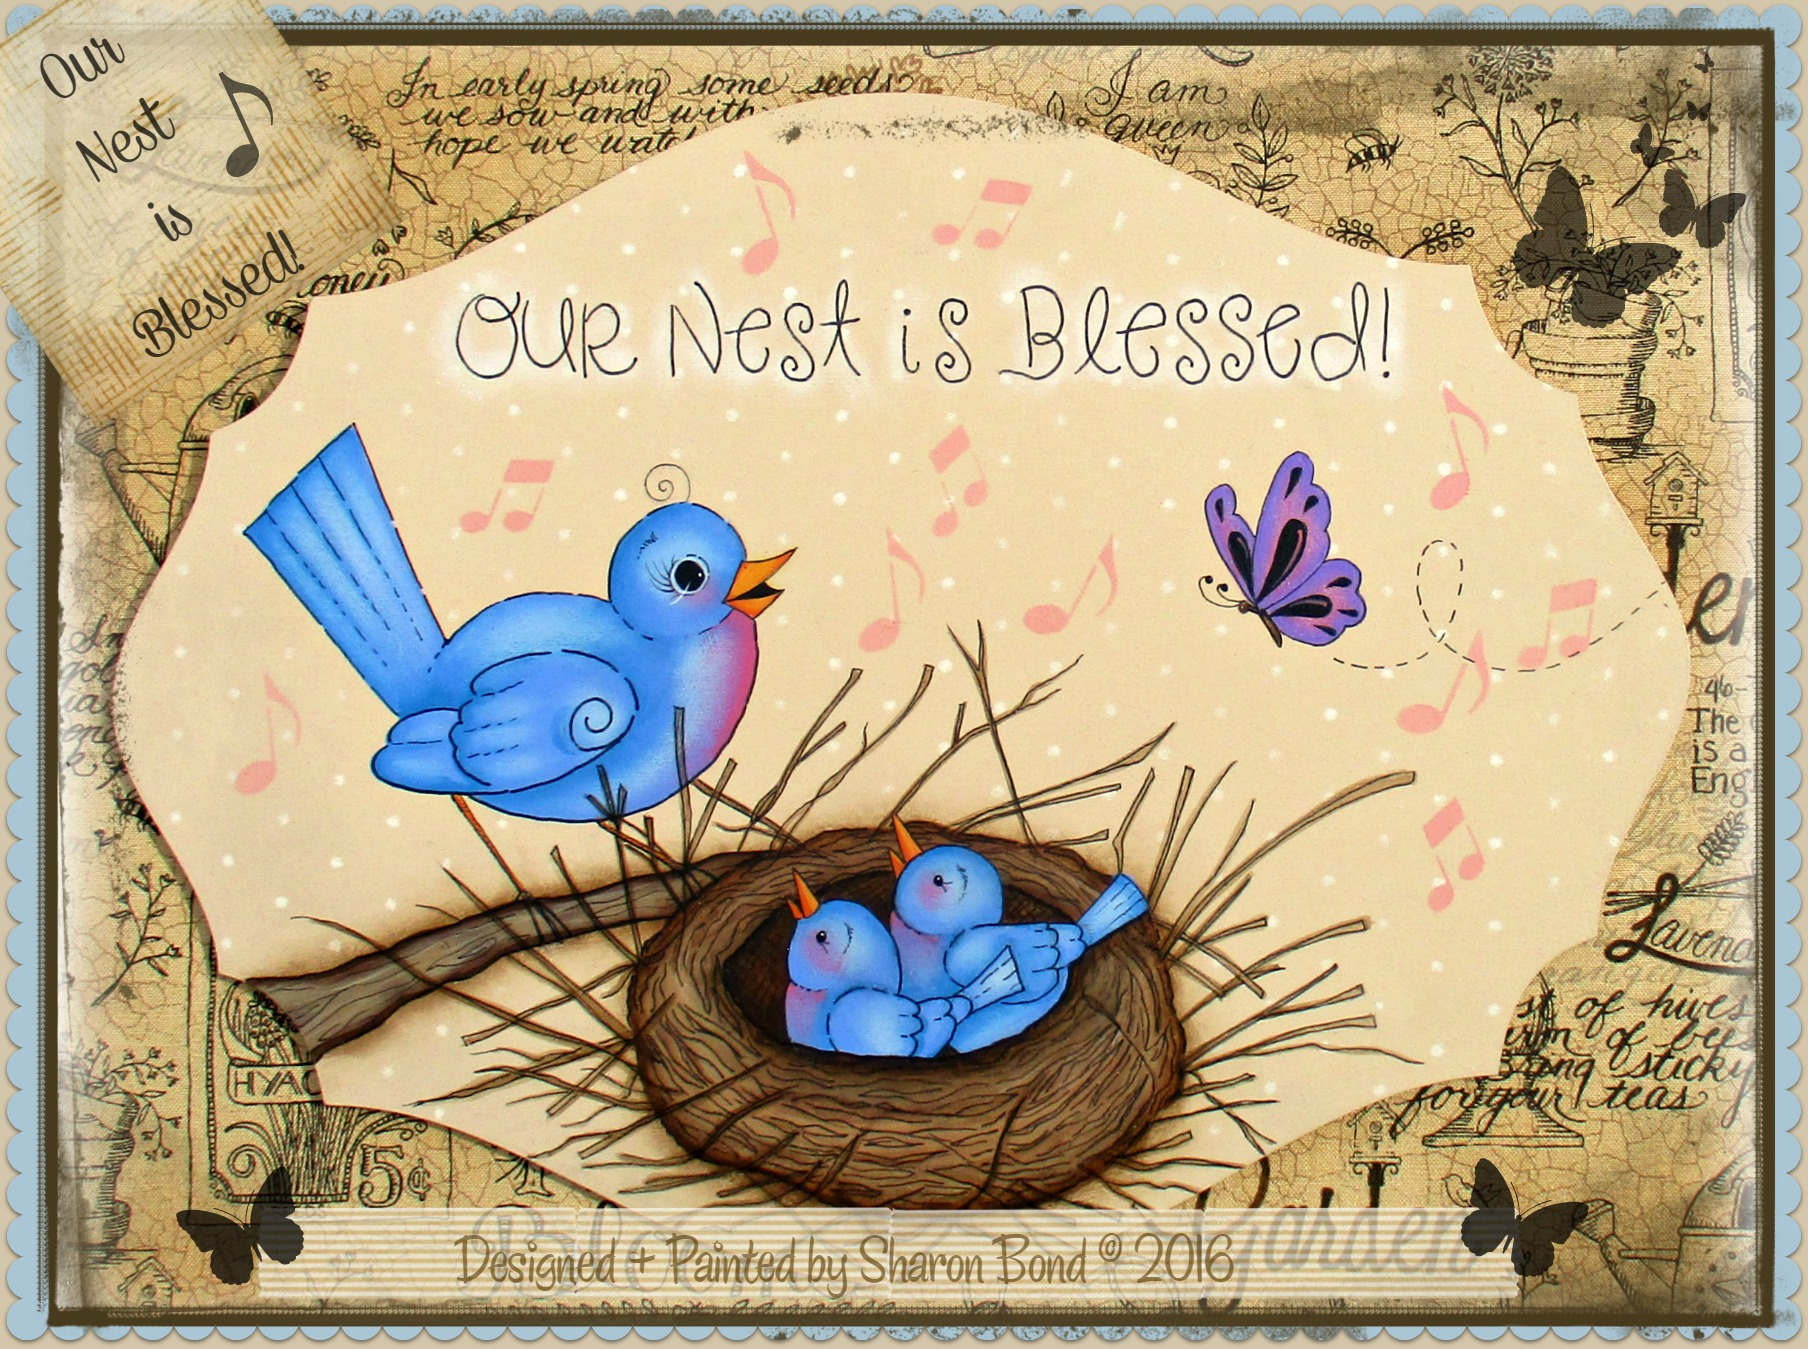 Our Nest Is Blessed! - E-Packet - Sharon Bond